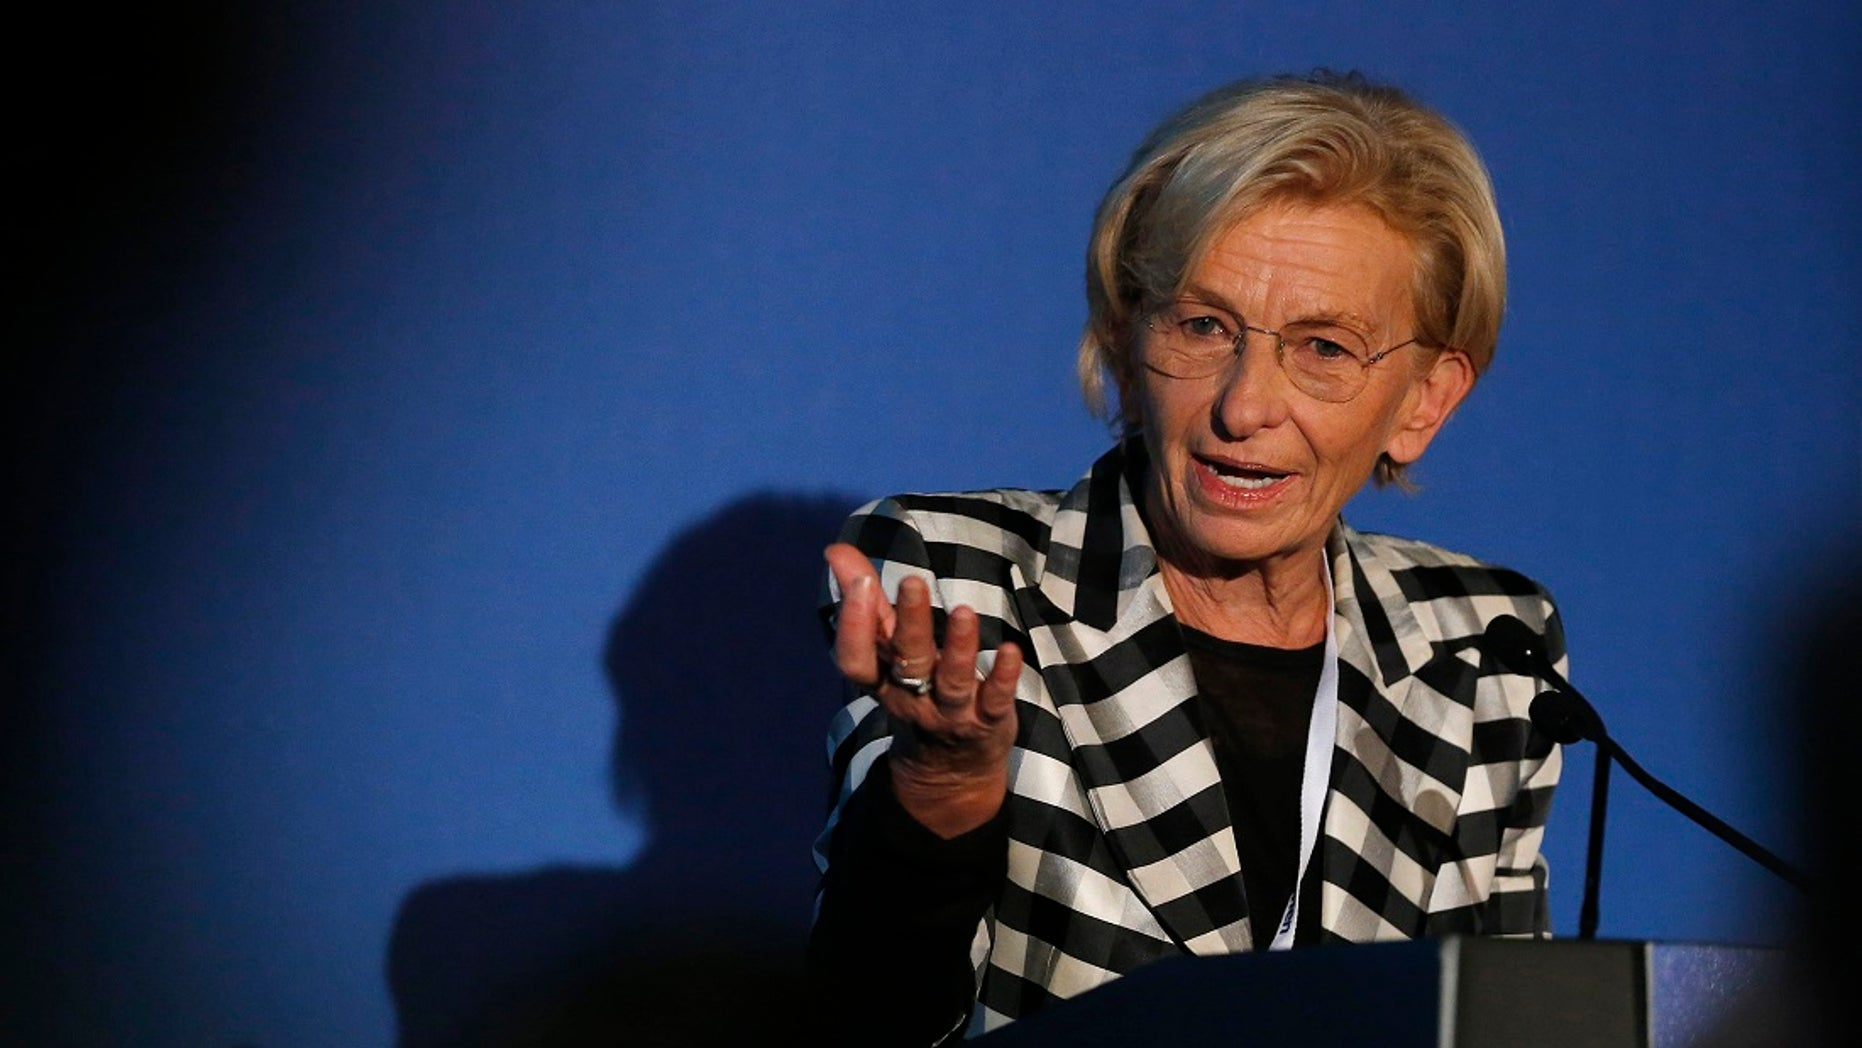 Italy's former Foreign Minister Emma Bonino spoke at a Catholic church about immigration on Wednesday despite protests from pro-life supporters. (Reuters)